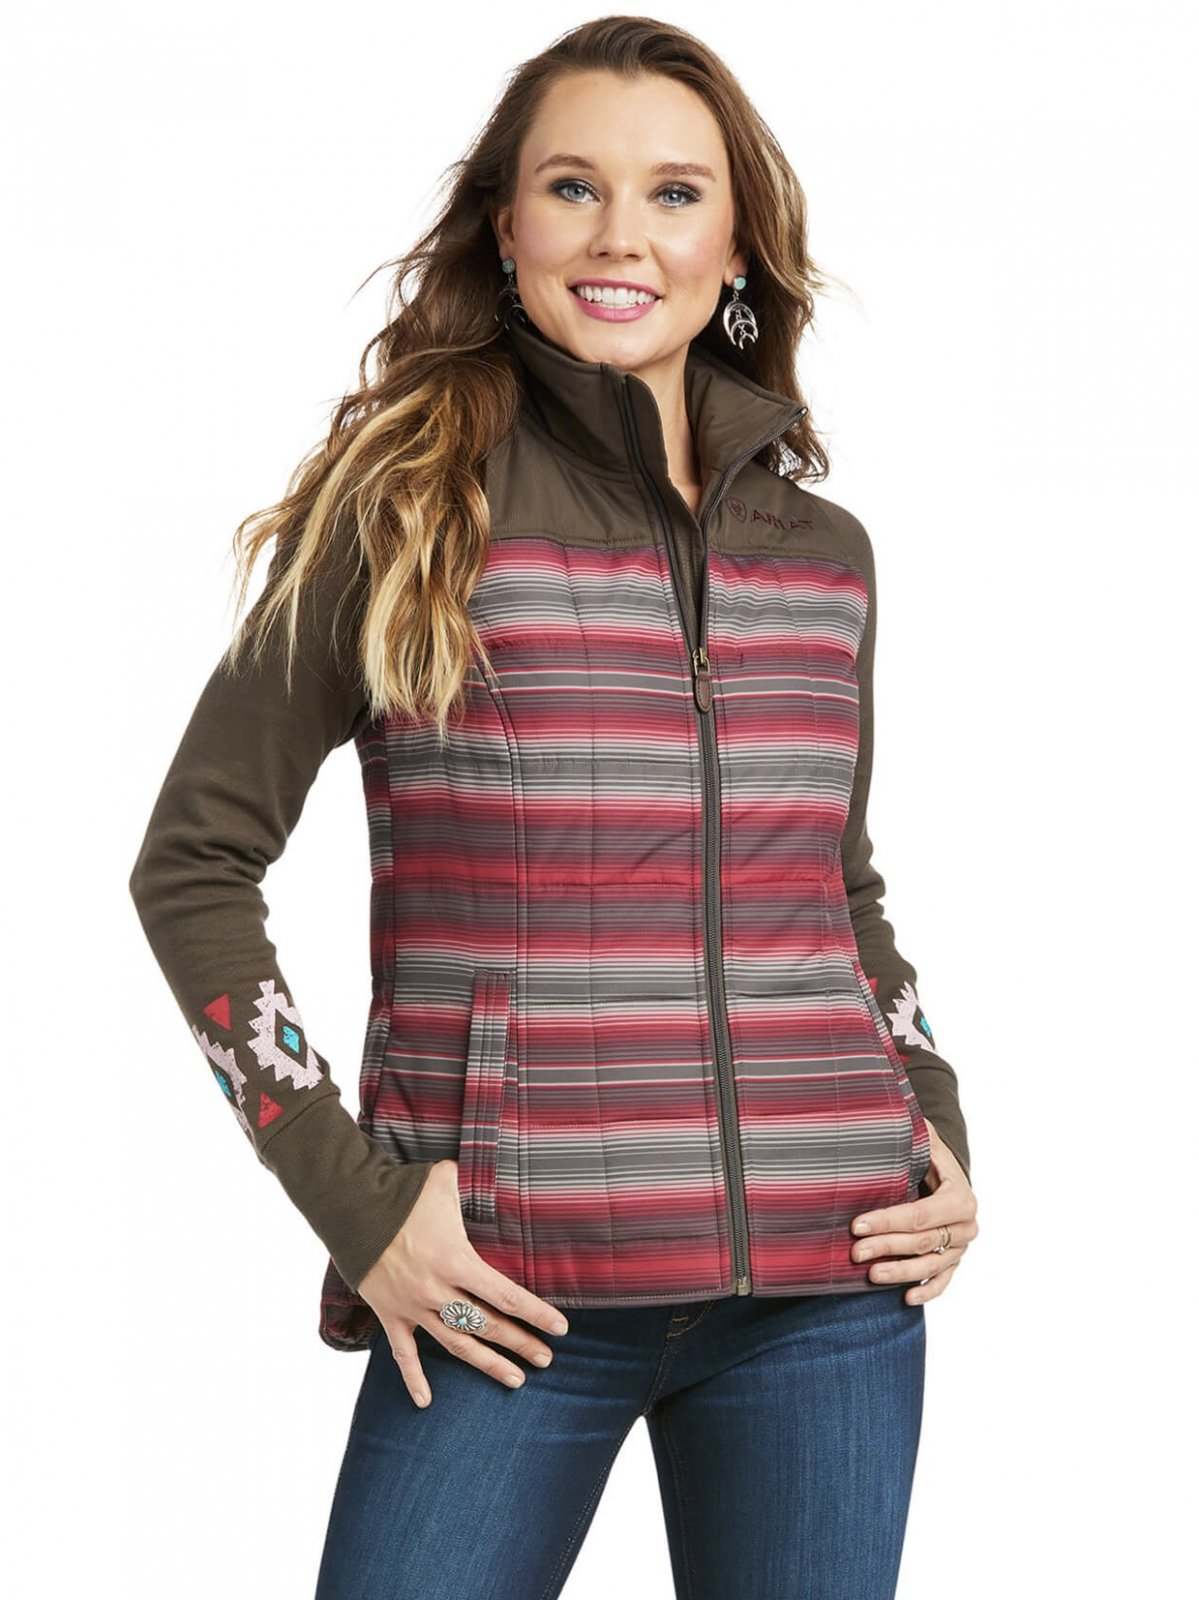 REAL Crius Vest from Ariat